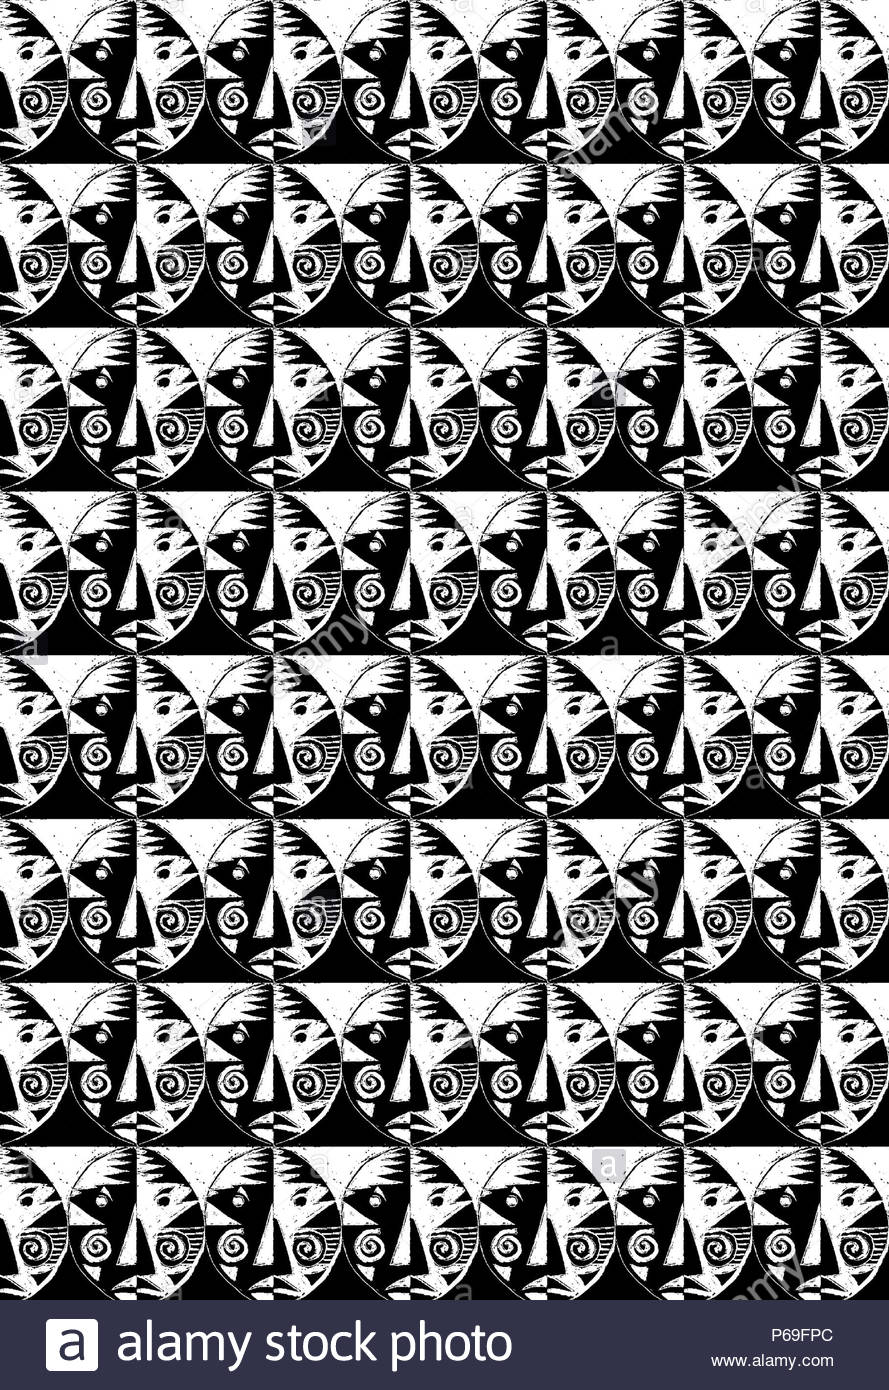 African pattern stock image